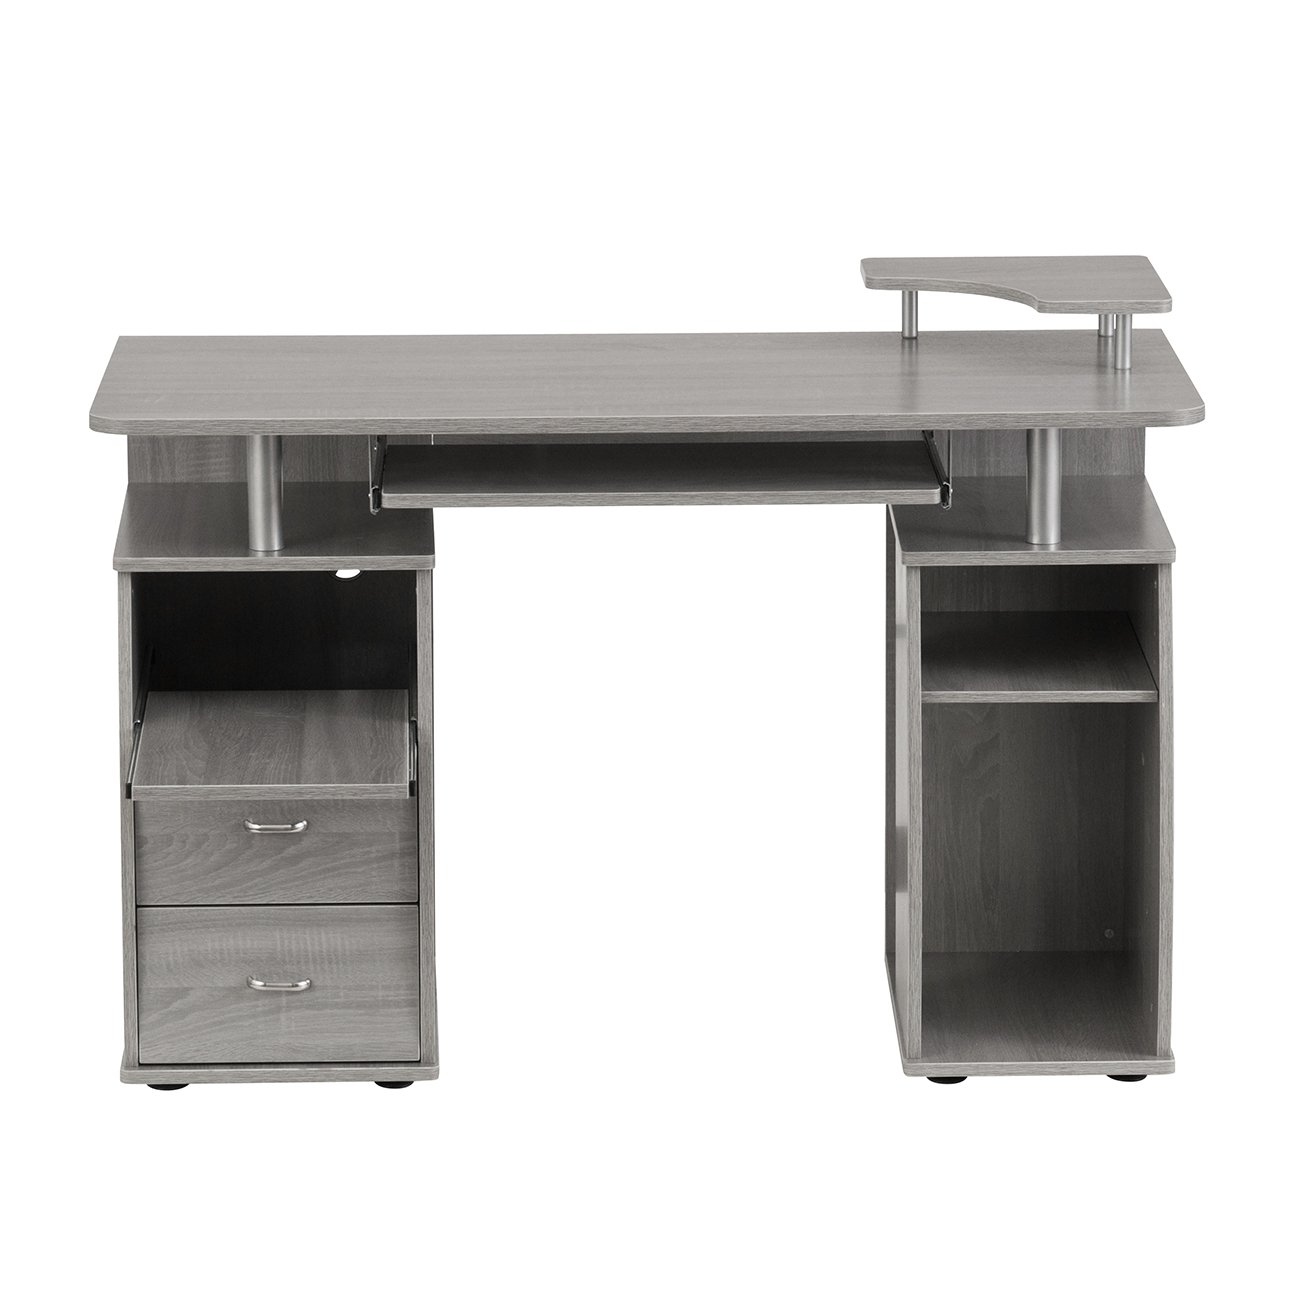 Techni Mobili Complete Computer Workstation Desk With Storage Grey 815764015043 Ebay